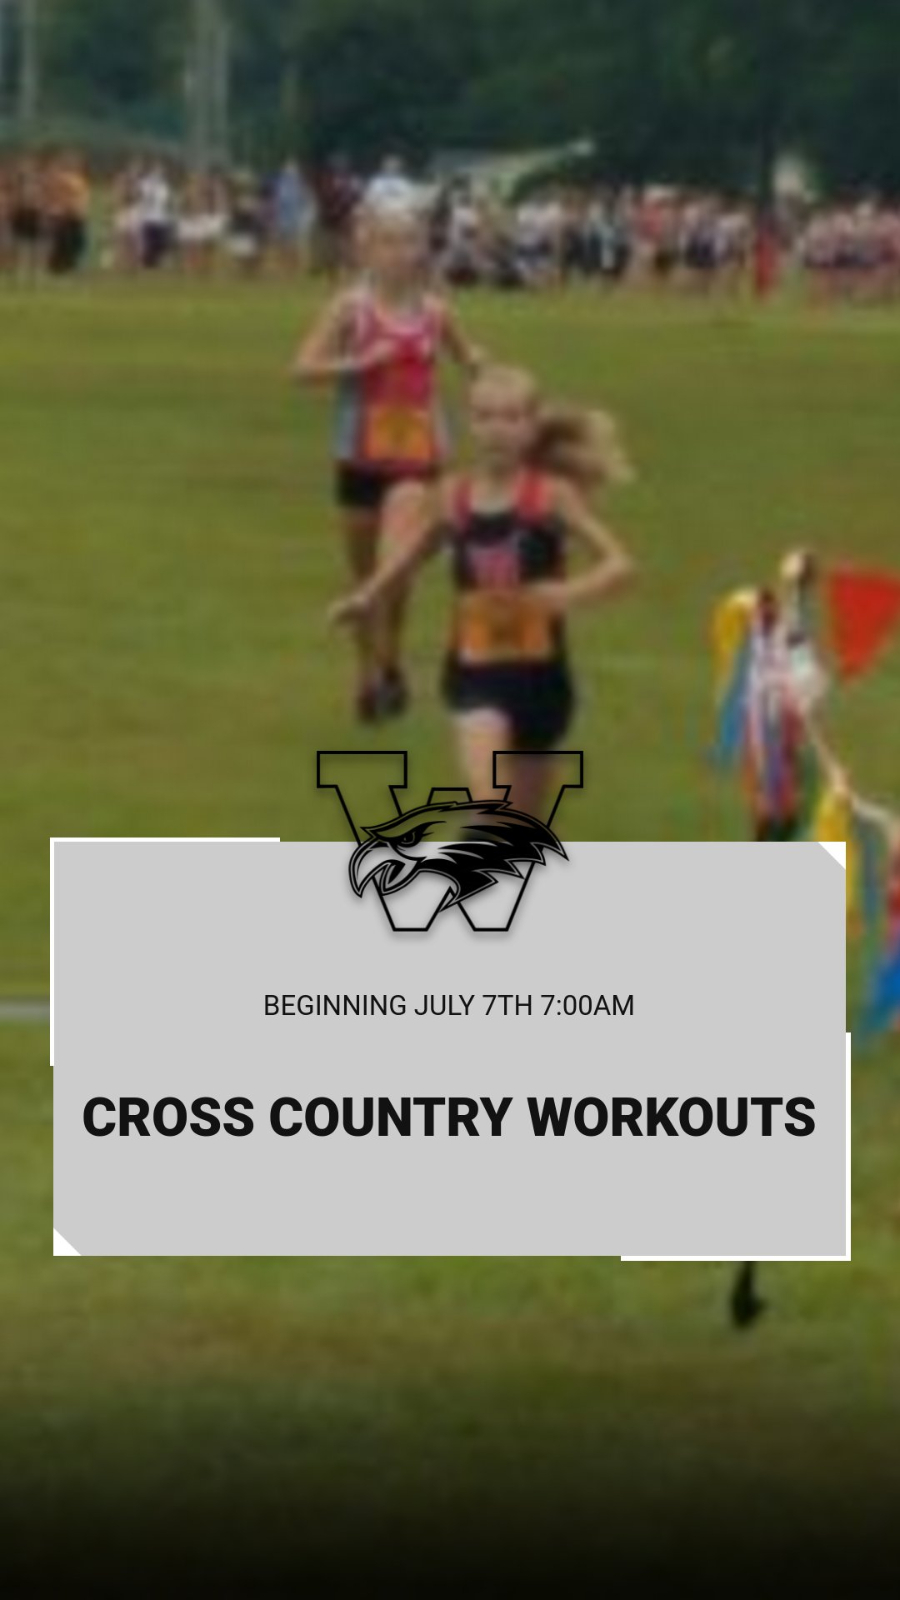 Cross Country Workouts